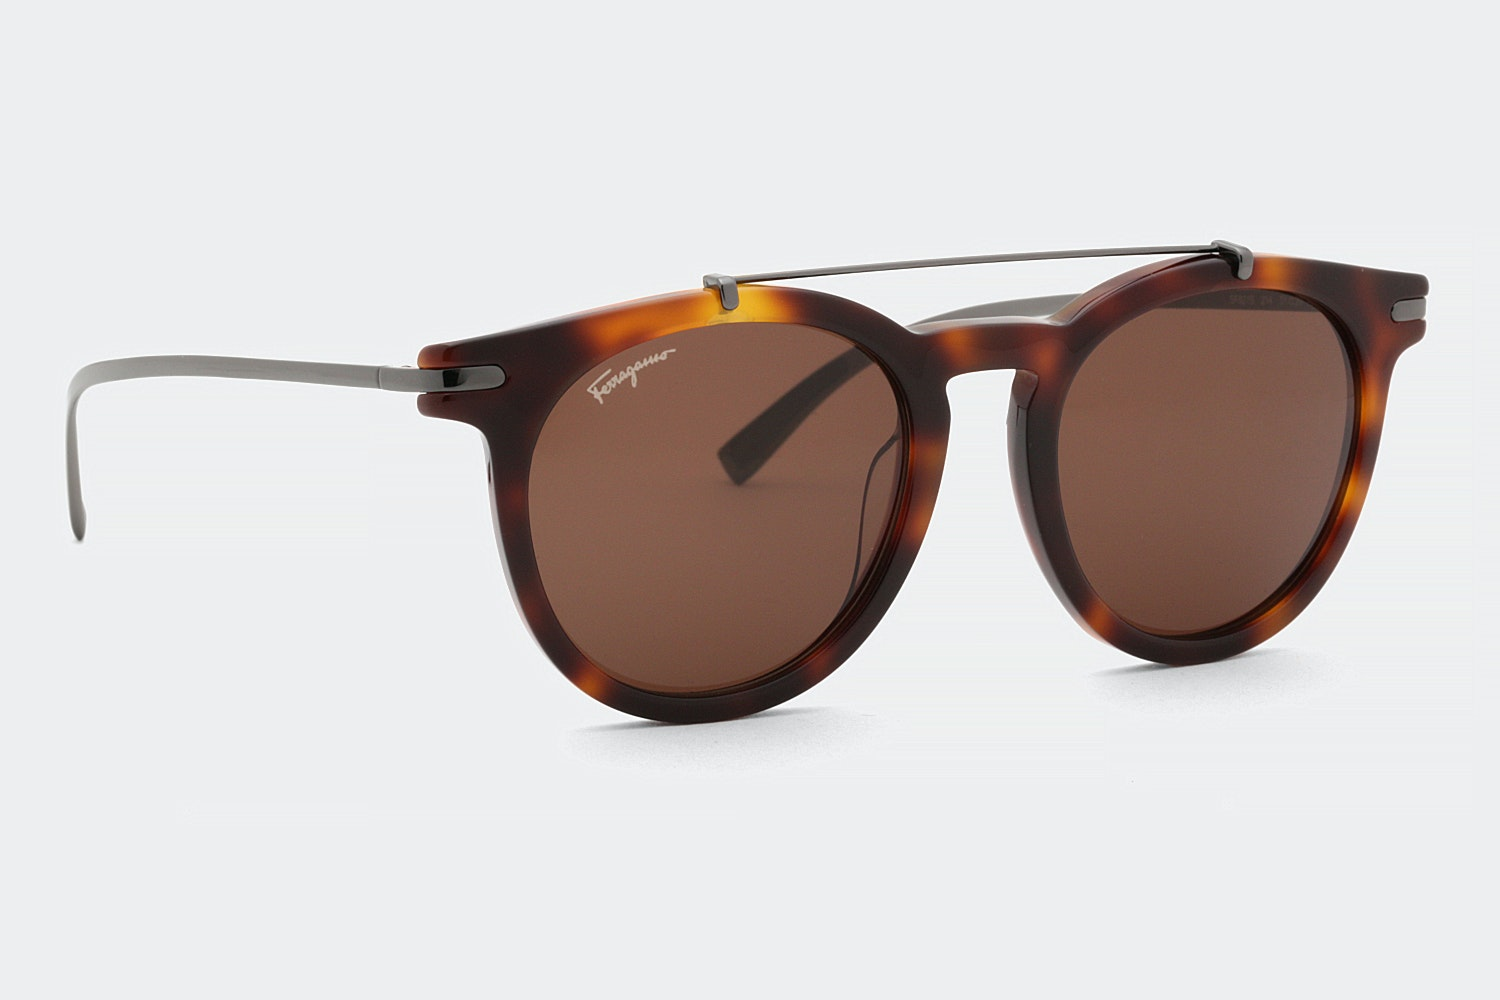 Havana frame with brown lenses